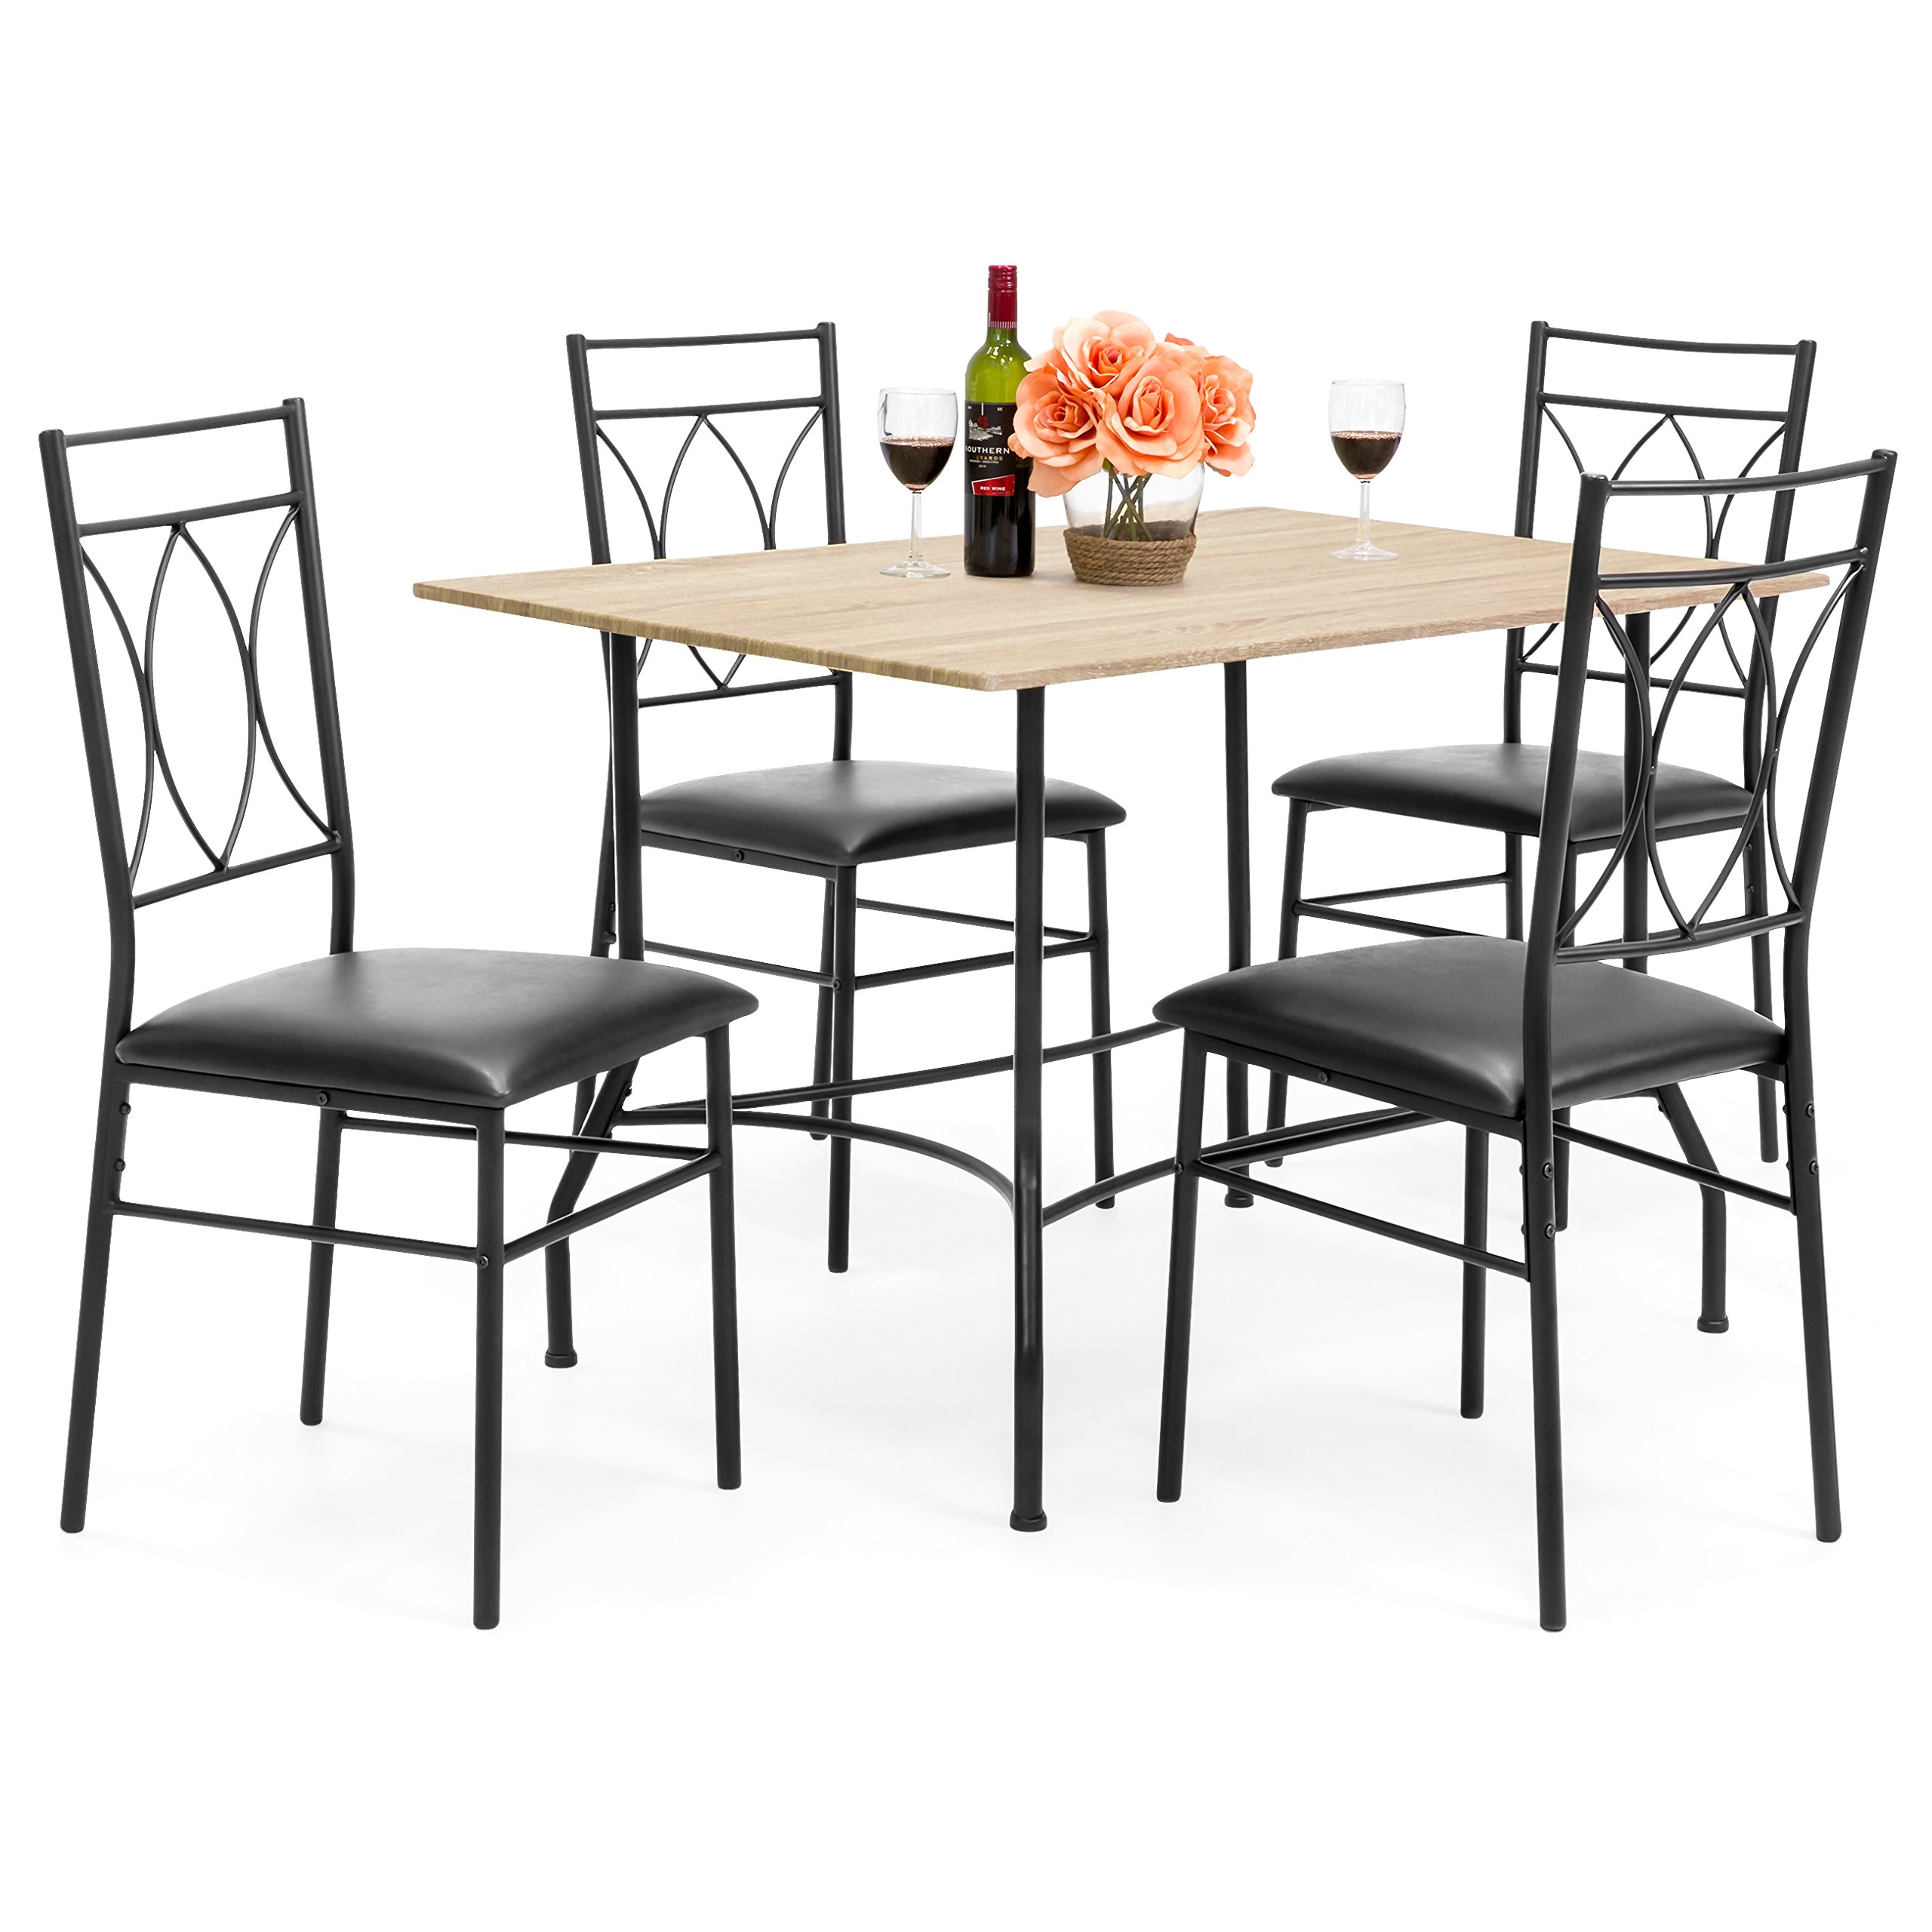 Clearance Dining Chairs: CLEARANCE Outdoor Patio Dining Set For 4 Wood Table And